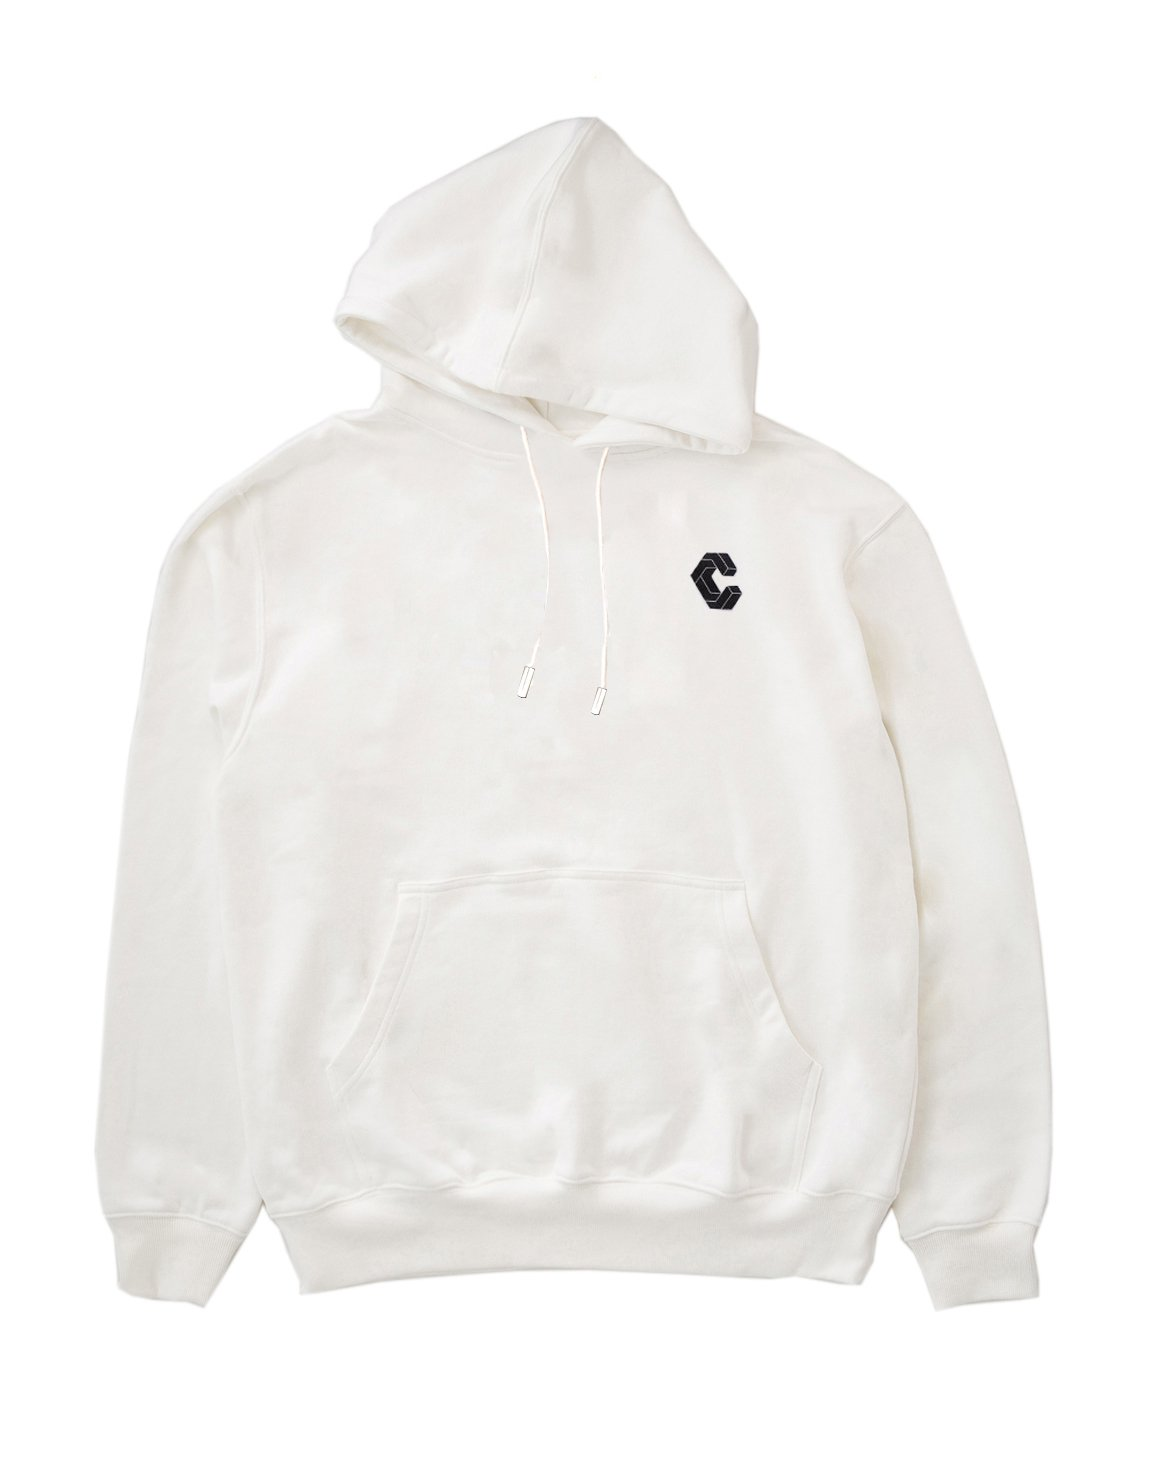 <img class='new_mark_img1' src='https://img.shop-pro.jp/img/new/icons55.gif' style='border:none;display:inline;margin:0px;padding:0px;width:auto;' />CRNS  BACK BIG LOGO HOODY【WHITE】